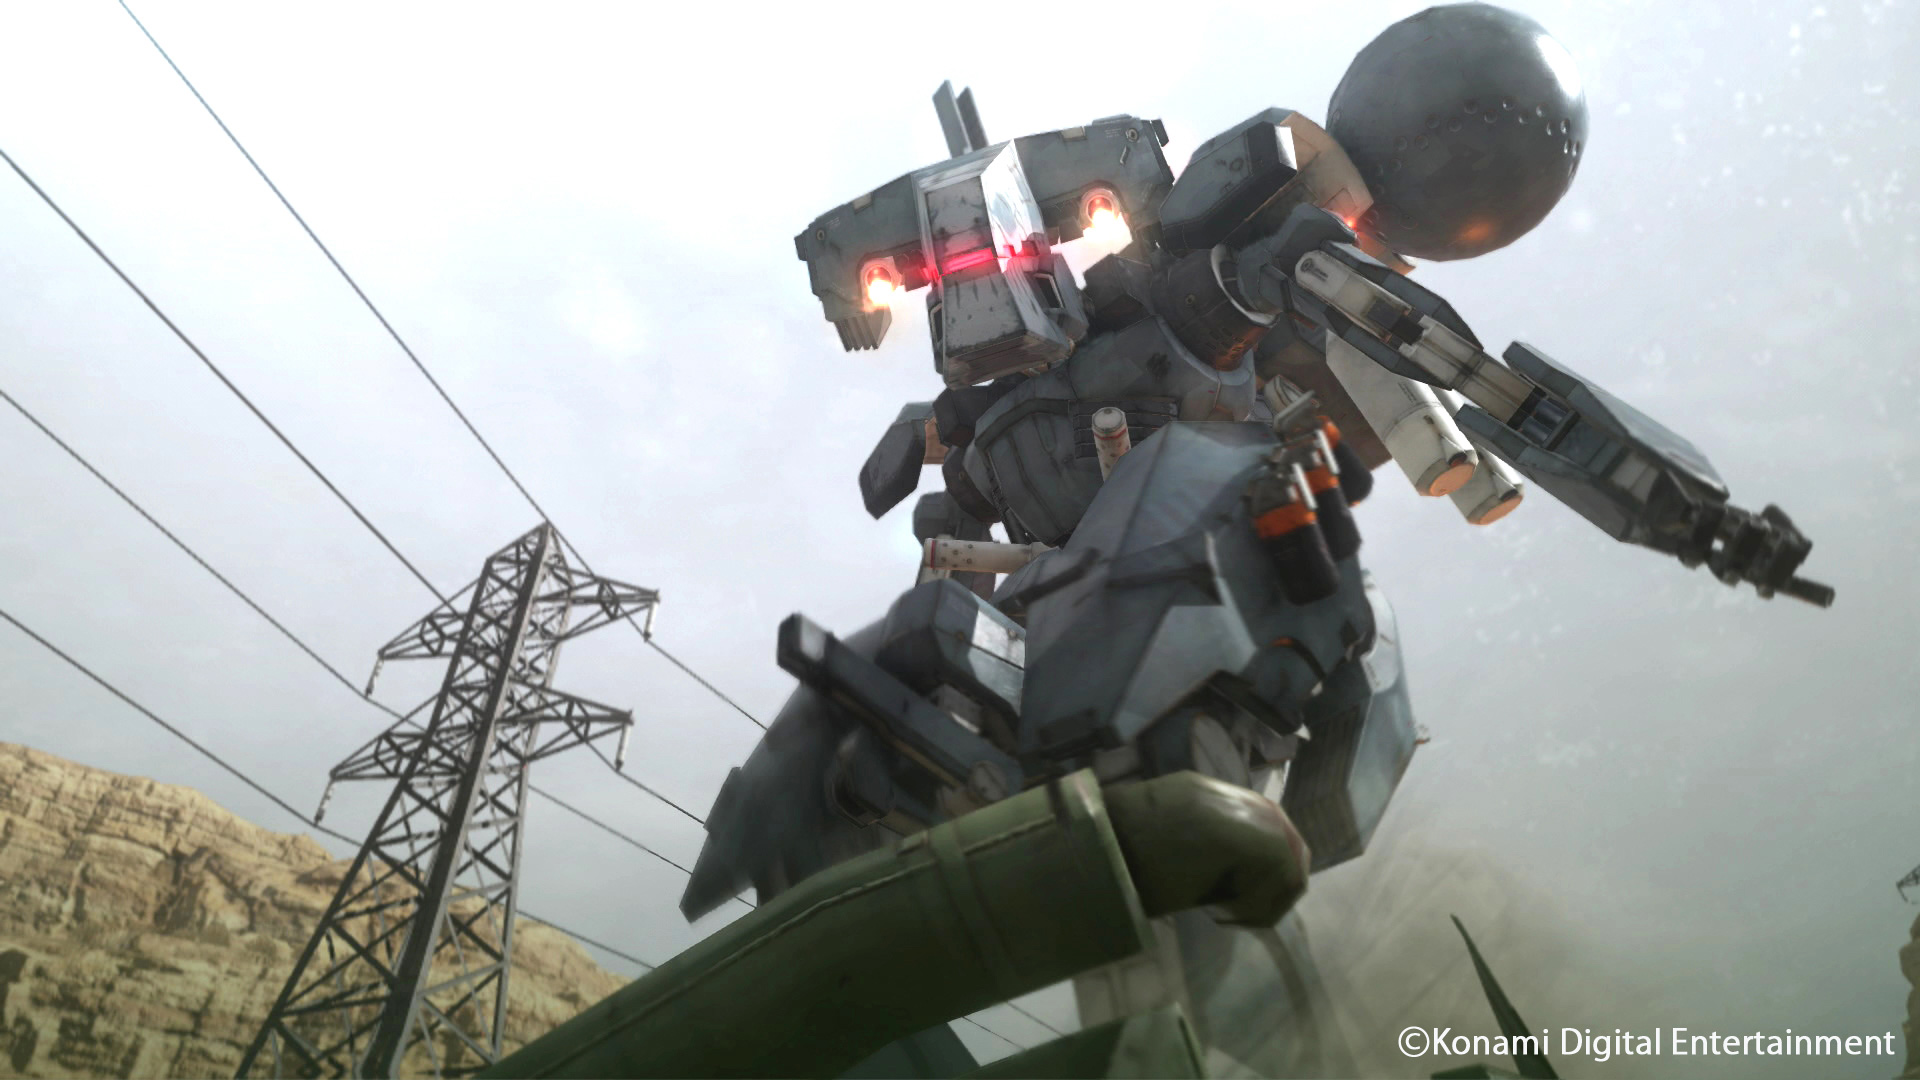 Metal-Gear-Solid-V-The-Phantom-Pain-Screenshot-Metal-Gear-2